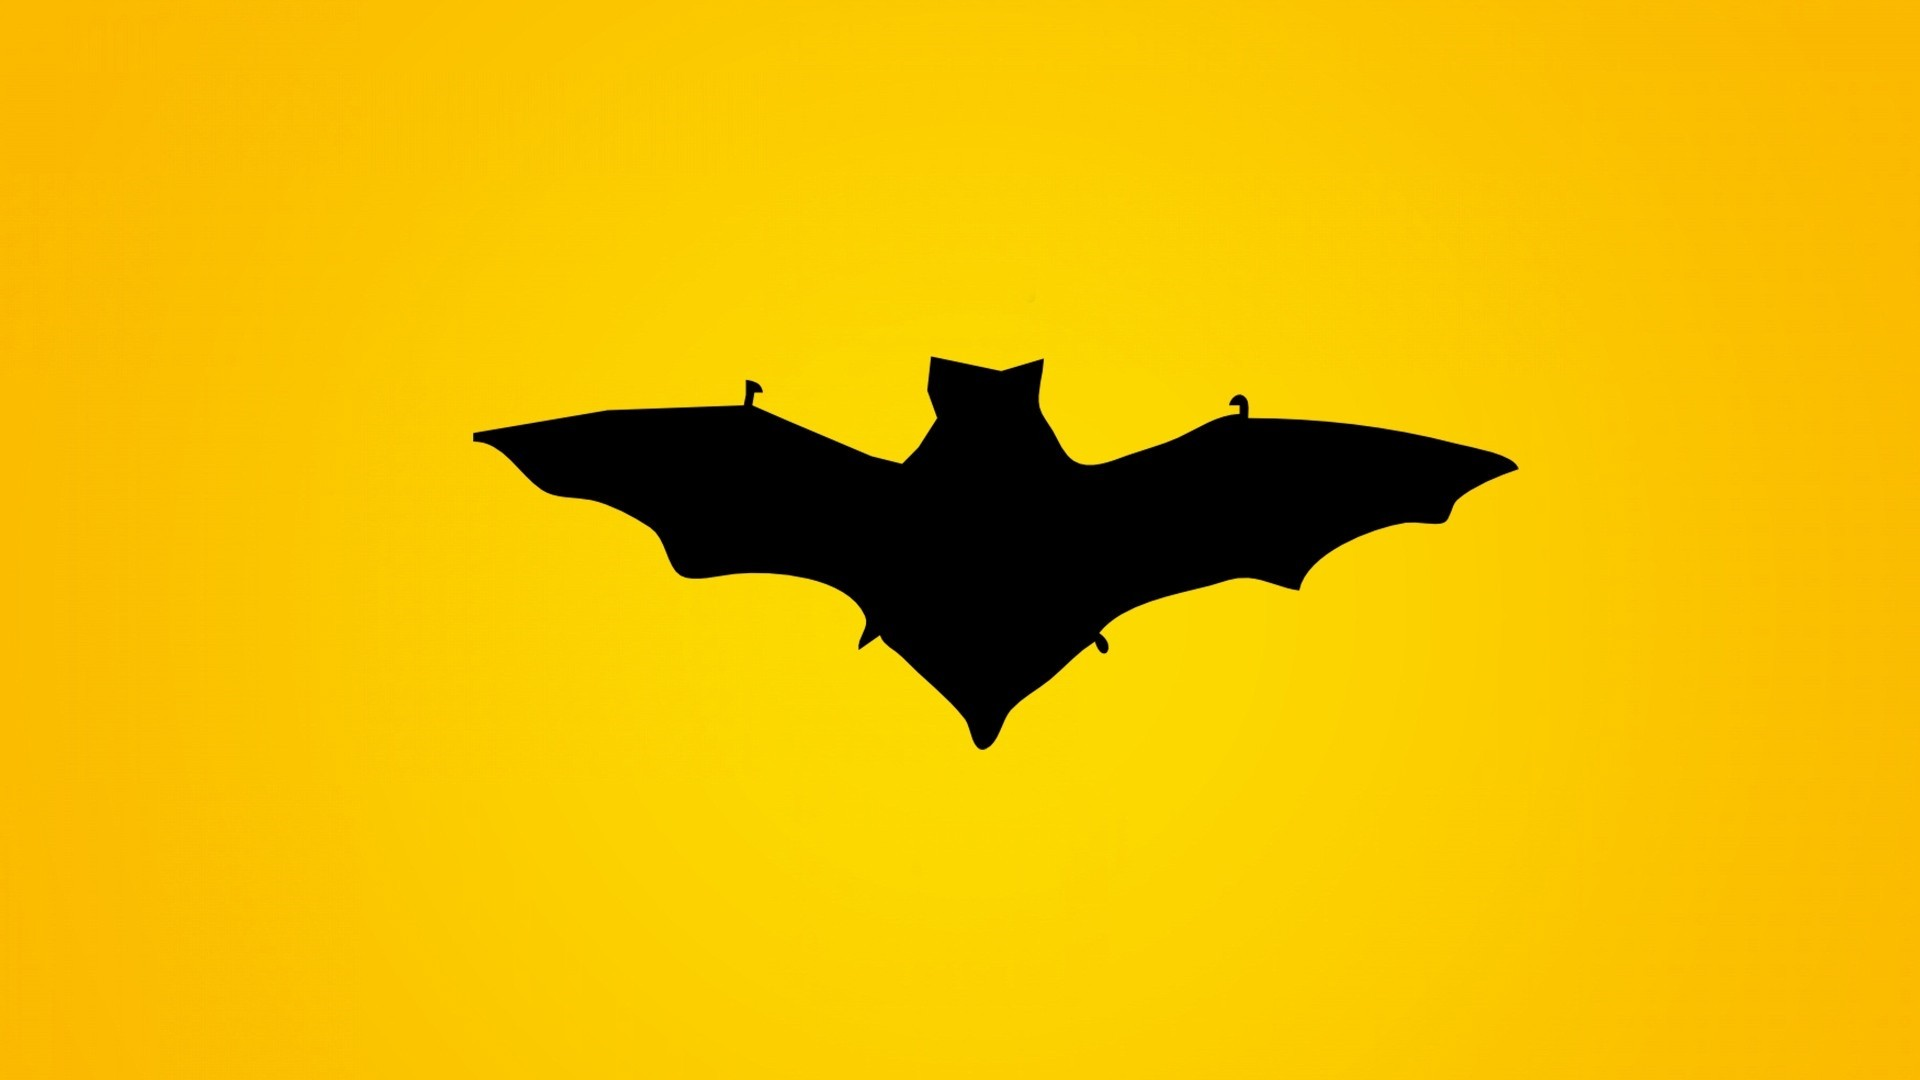 Bat Wallpaper and Background